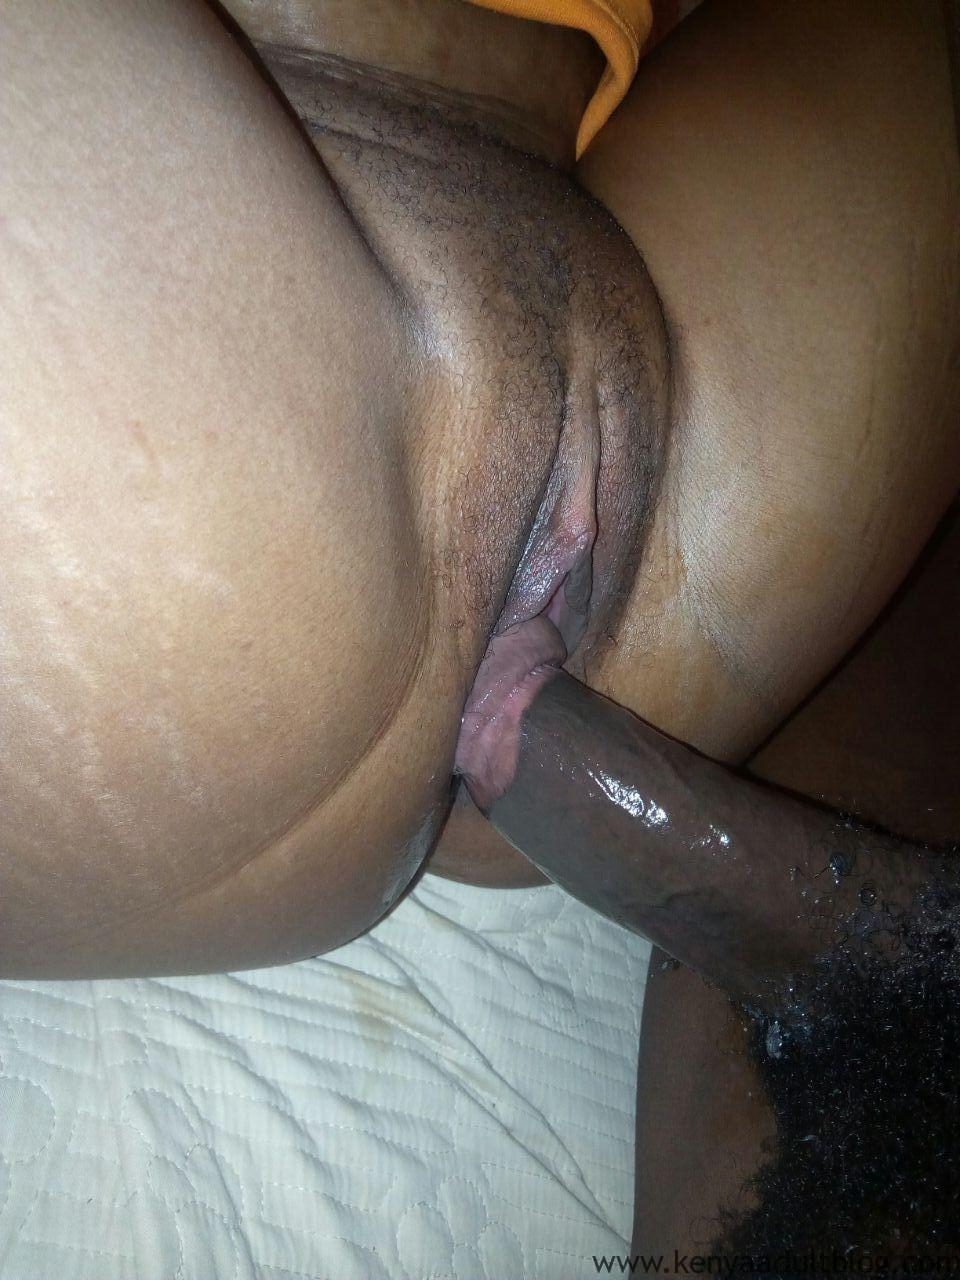 from Remy good naked ass black girl pussy